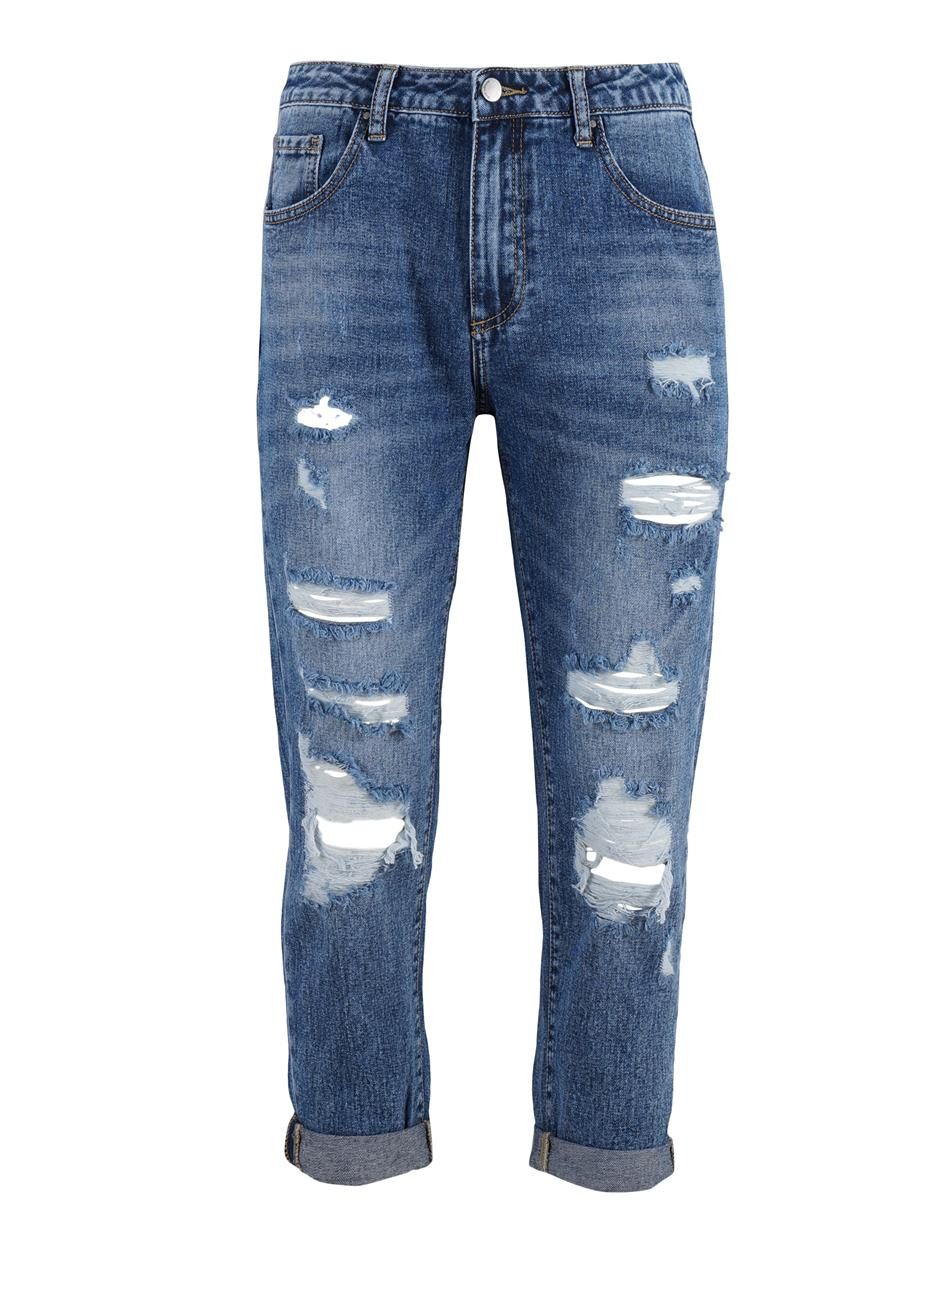 Παντελόνι jean DISTRESSED.Denim collection.